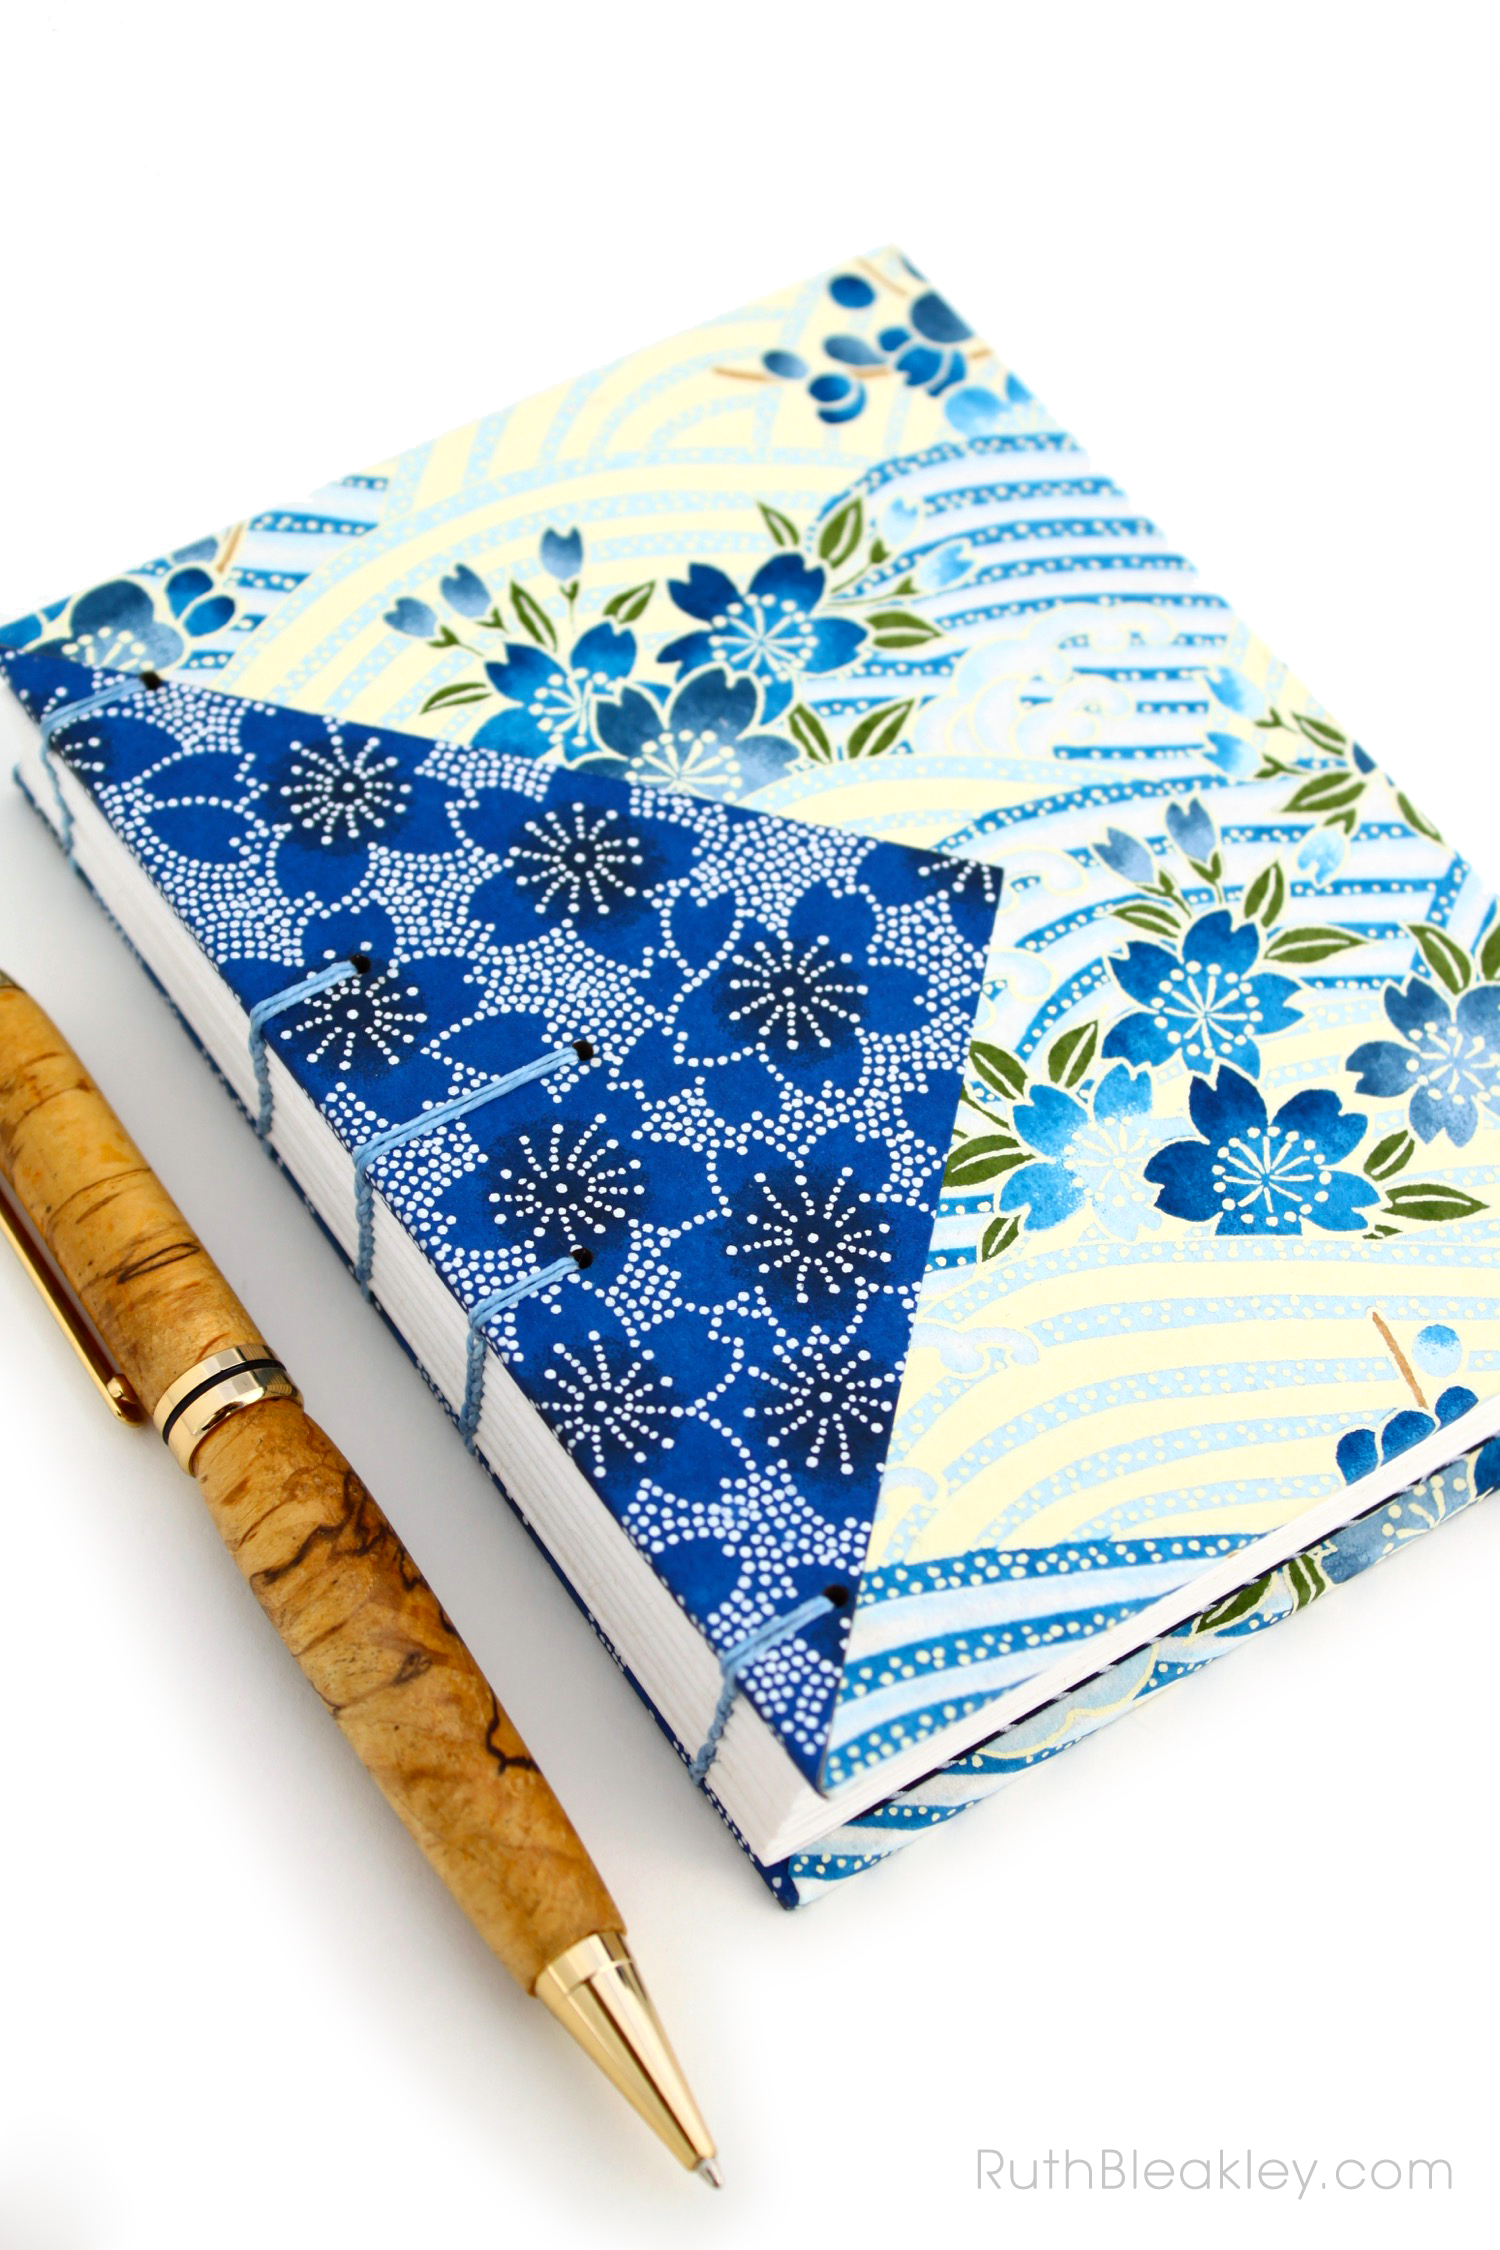 Blue flowers Twin Journals handmade by Ruth Bleakley Coptic Stitch with Japanese Yuzen Paper - 6